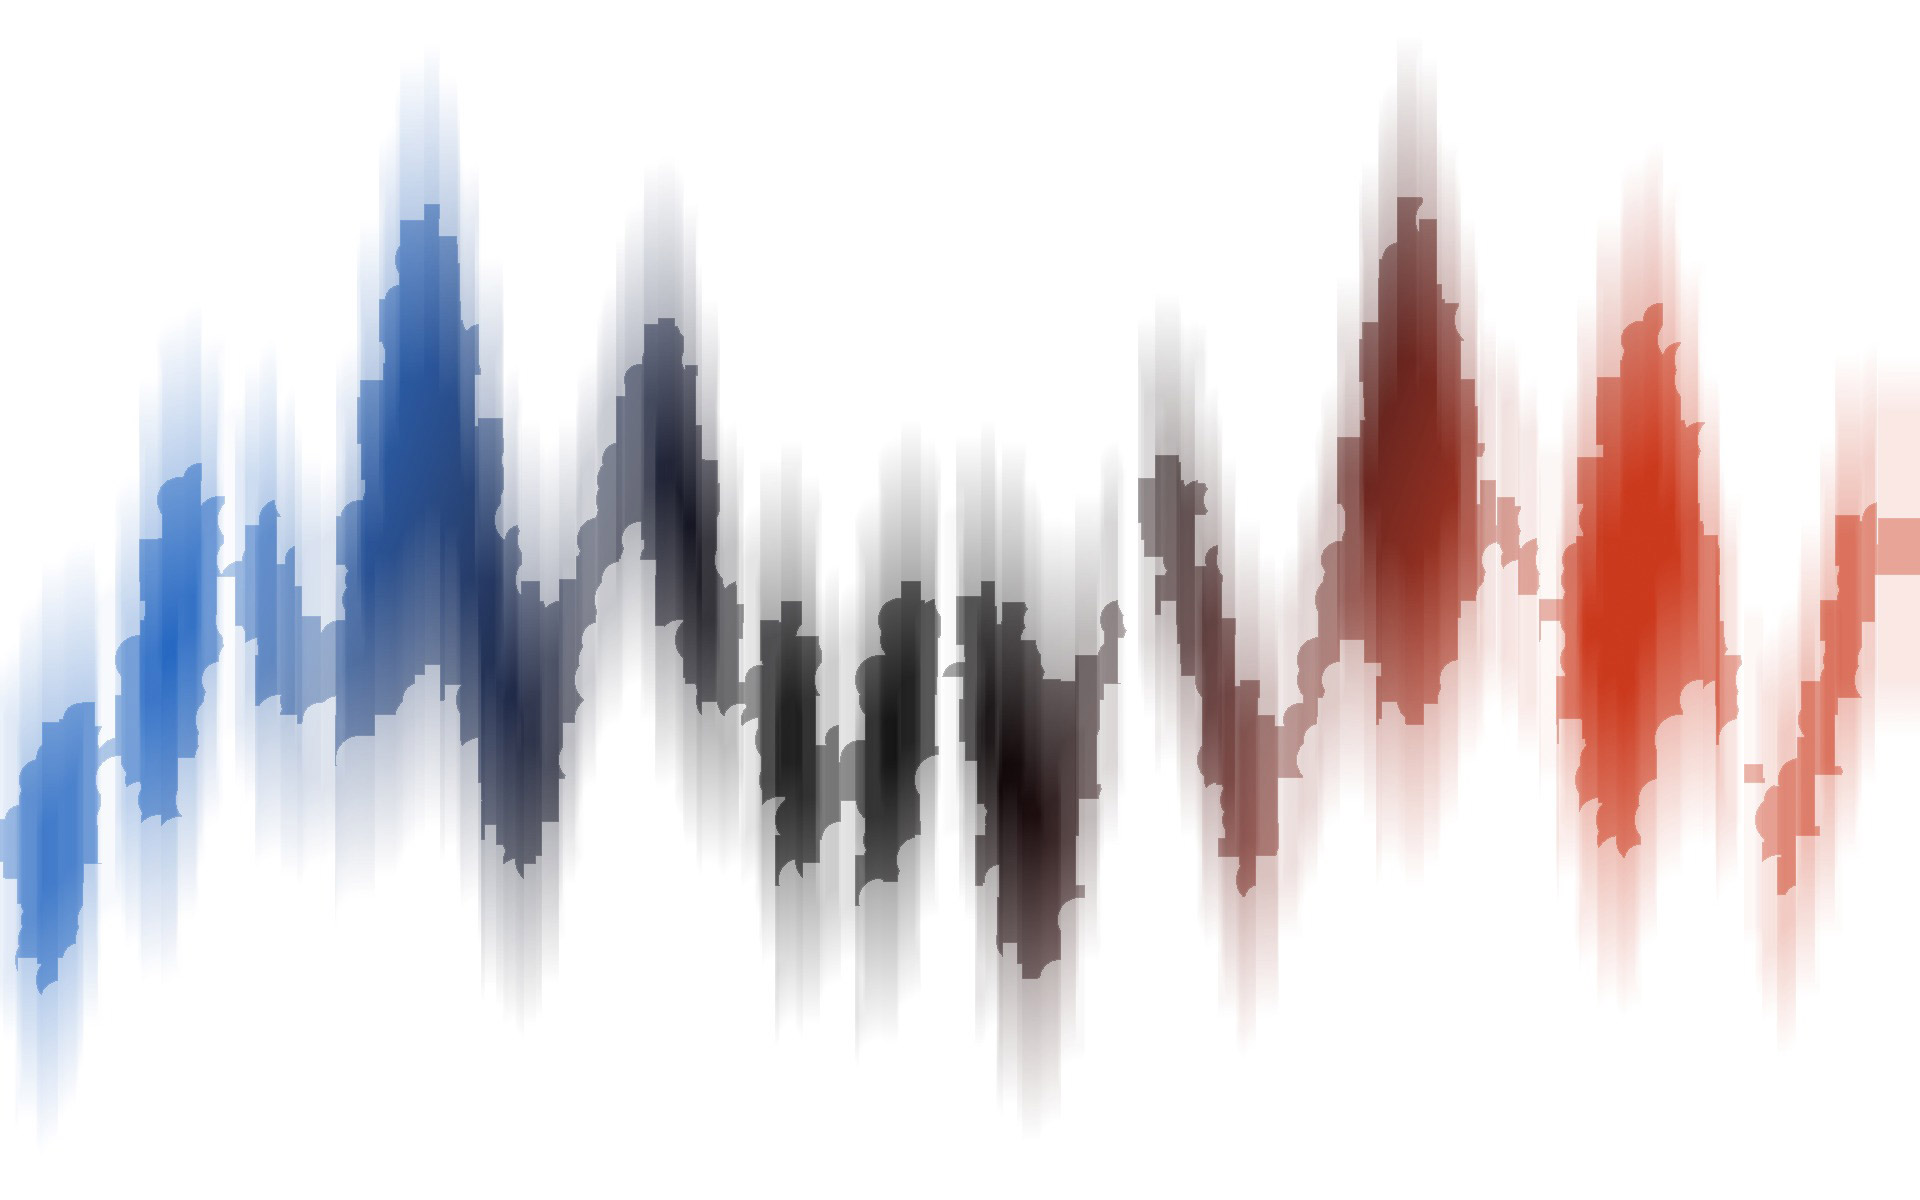 HD Sound Wave Backgrounds 1920x1200